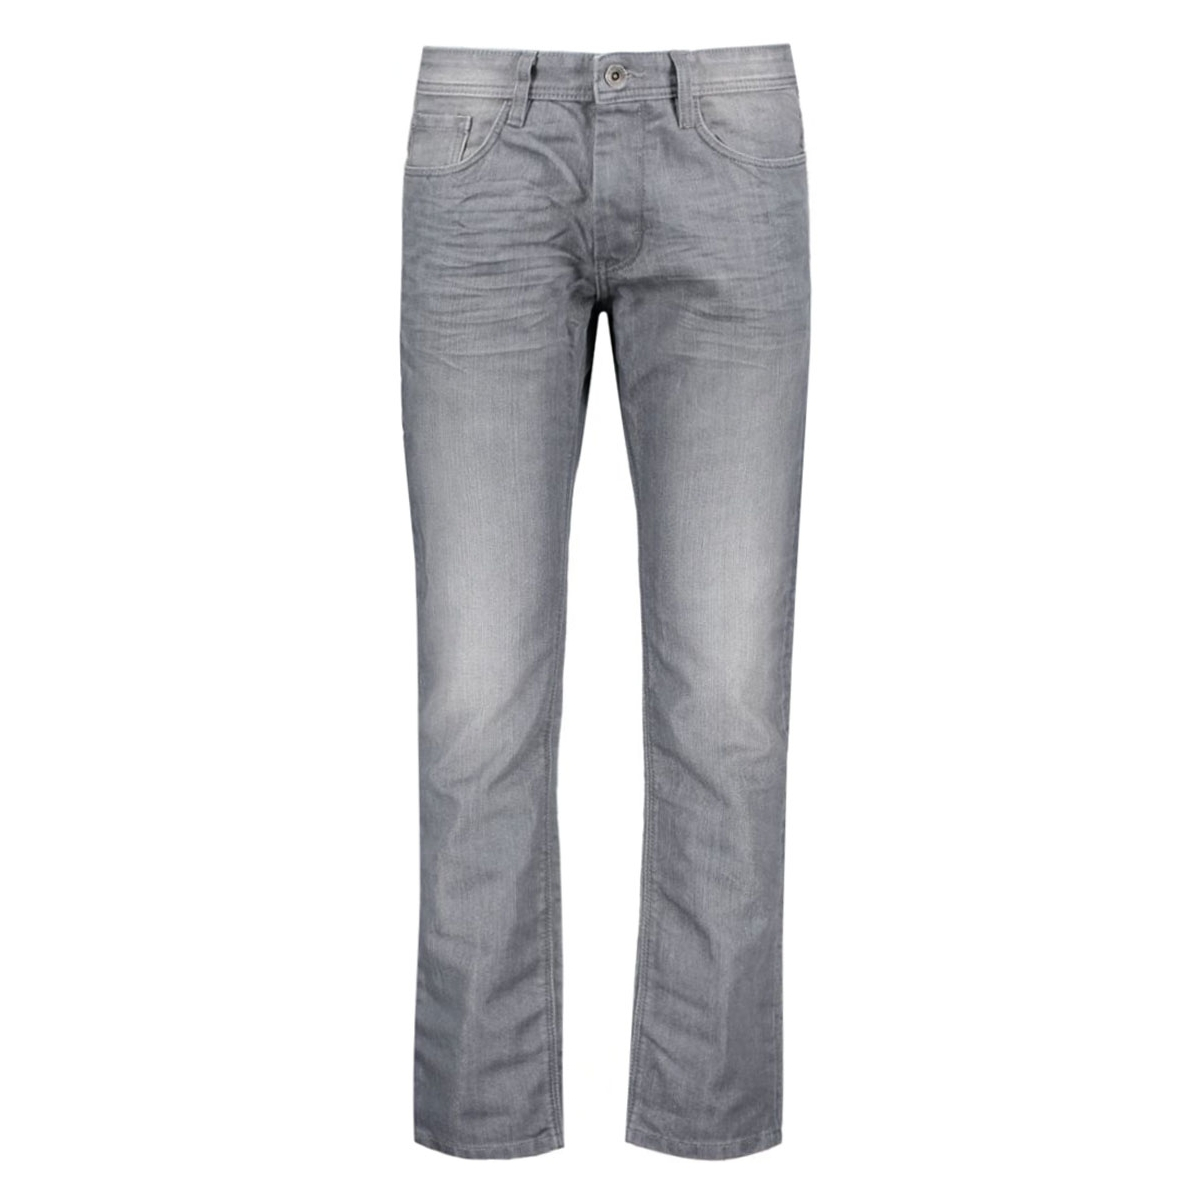 6204967.00.10 tom tailor jeans 1056